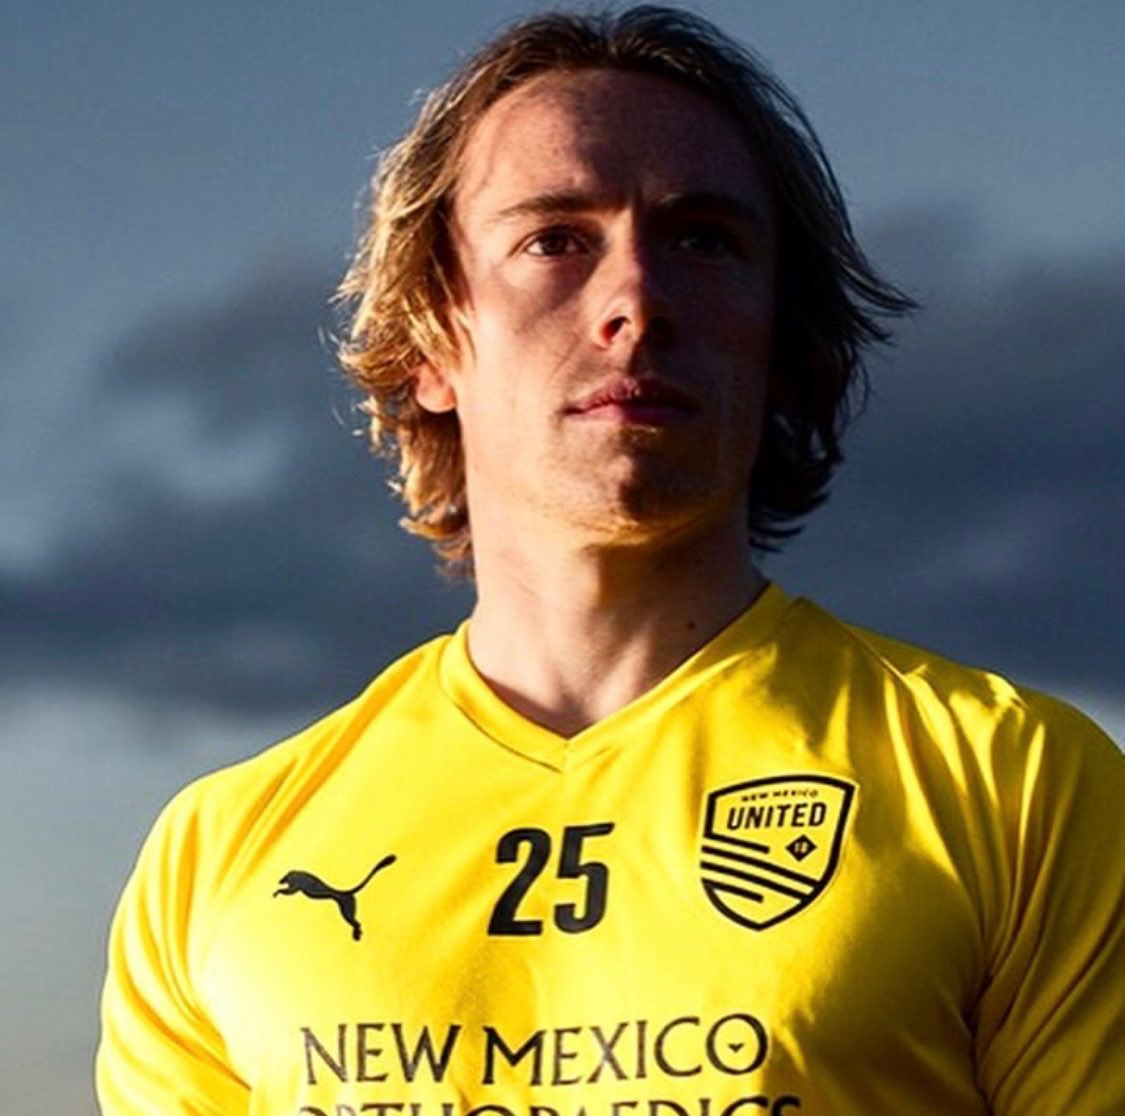 THROWBACK | One year ago today, @NewMexicoUTD unveiled client @danielrbruce as their new signing. The rest, as they say, is history... Brucey is a fan-favourite in New Mexico that's for sure #Soccer #Brucey #BeChampions #NewMexico #United #SomosUnidos<br>http://pic.twitter.com/sgJjq7DIFD